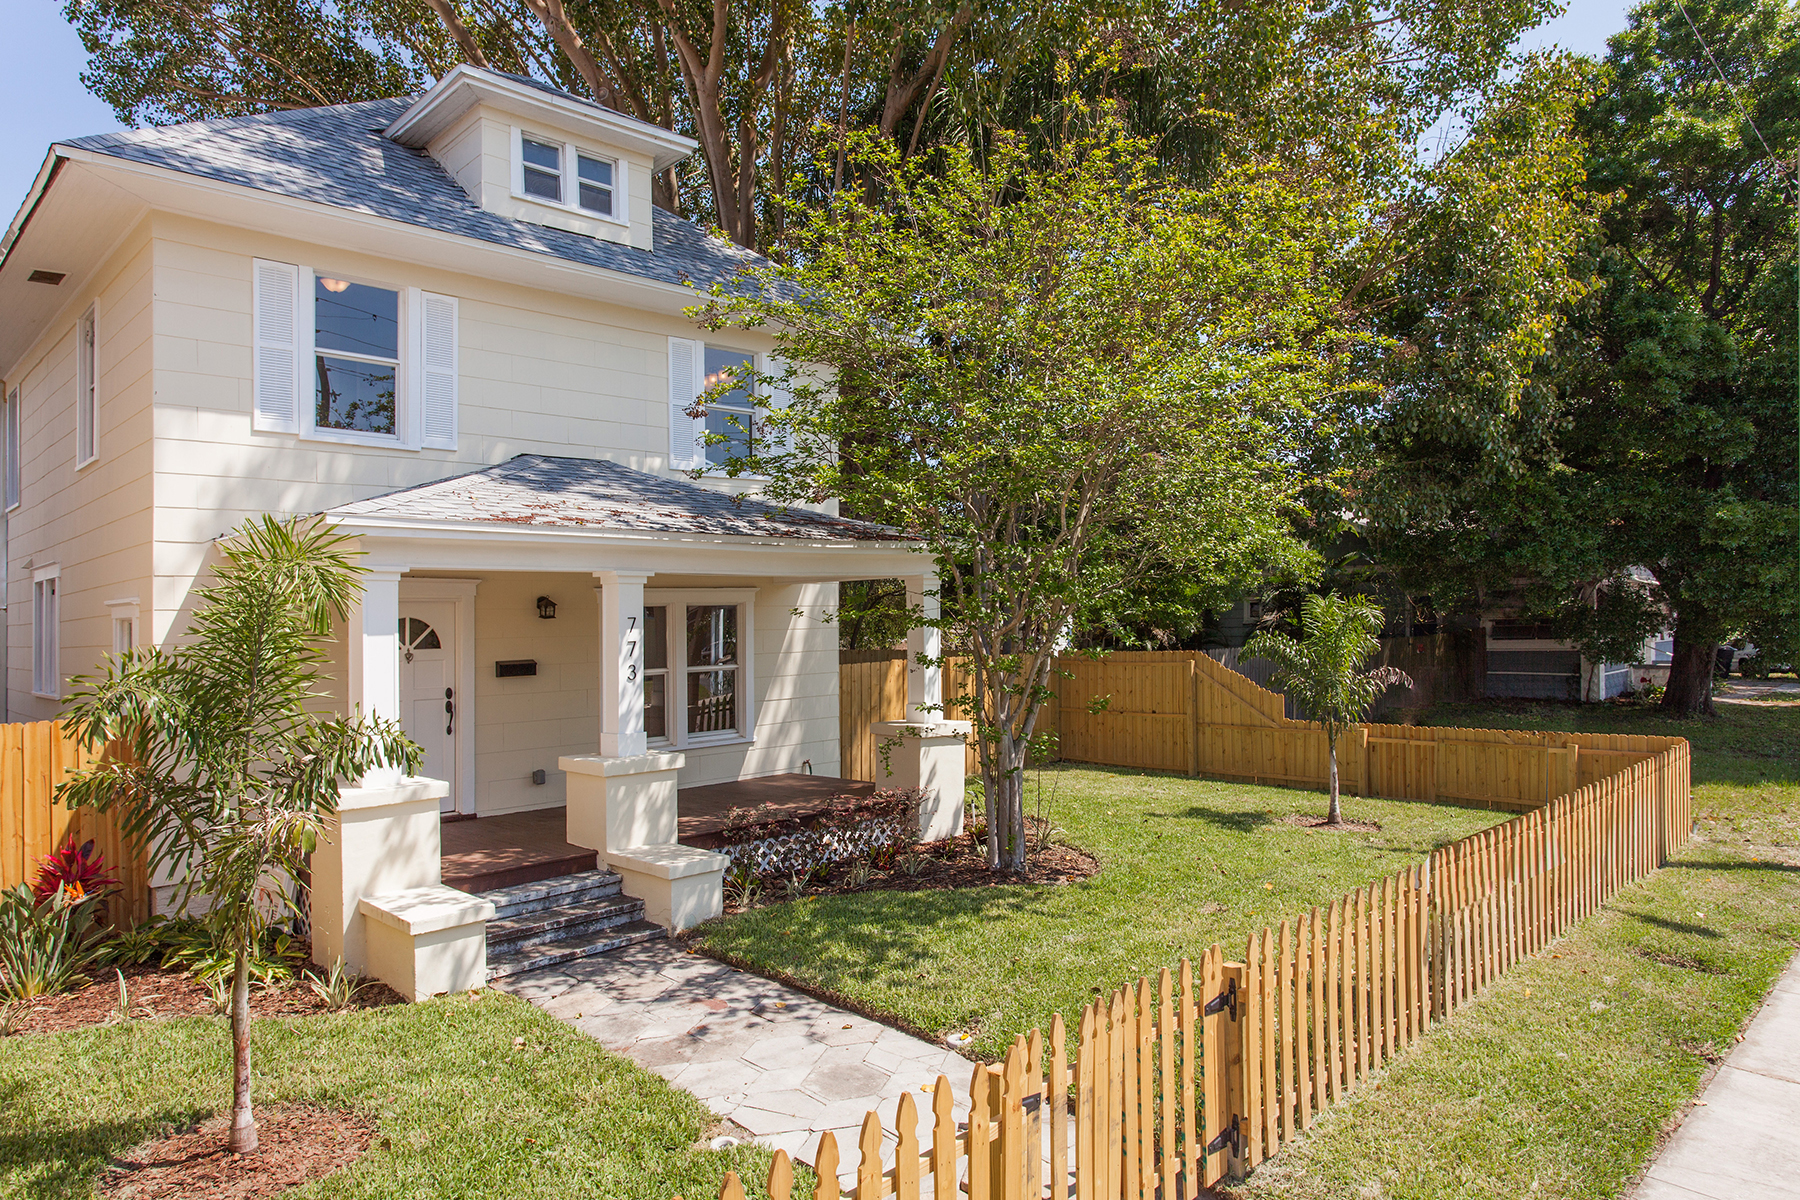 Single Family Home for Sale at ST. PETERSBURG 773 4th Ave N St. Petersburg, Florida 33701 United States